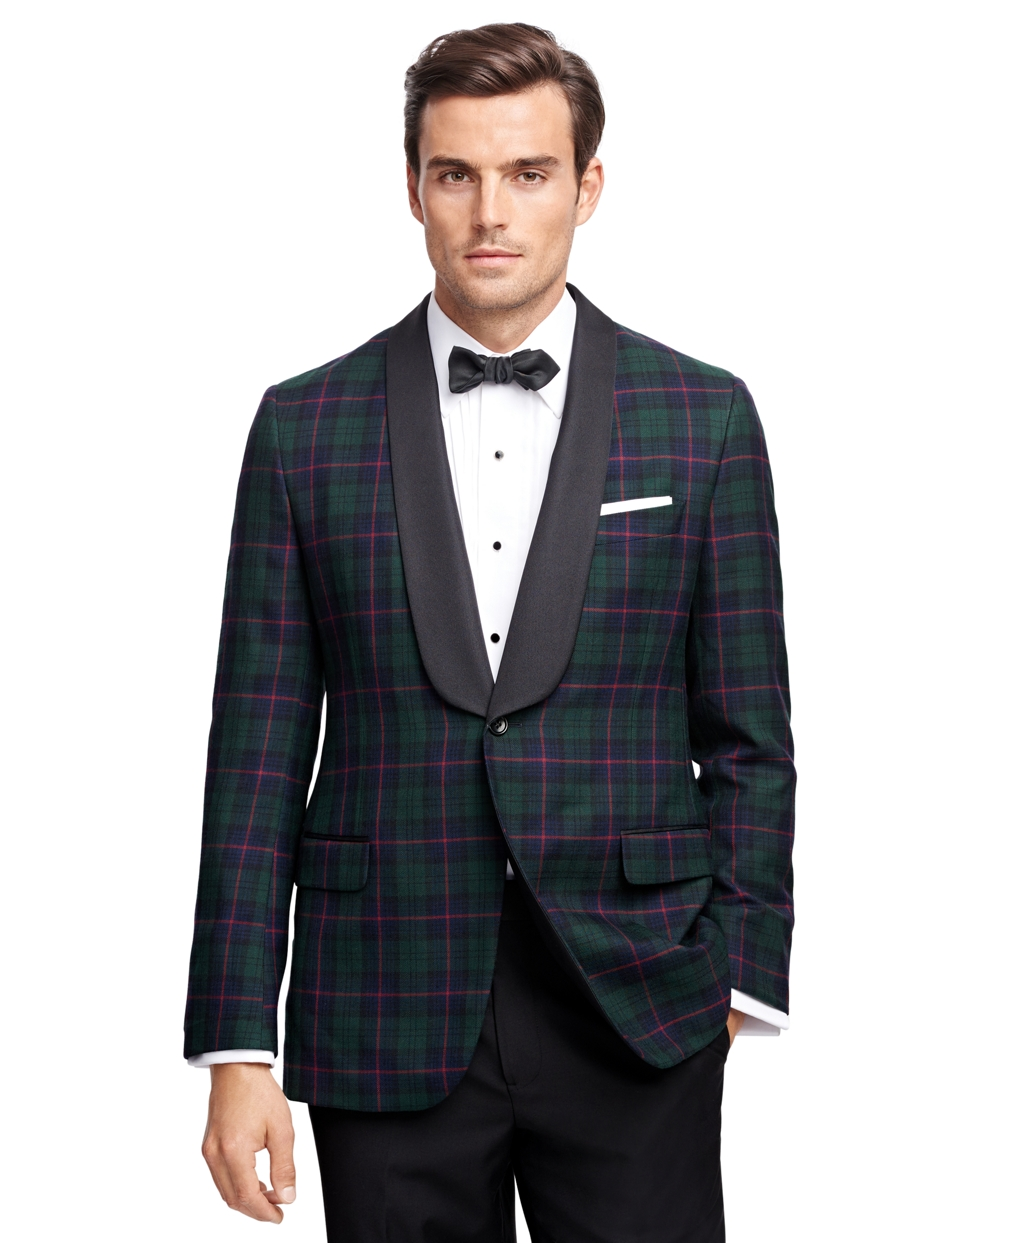 New Vintage Tuxedos, Tailcoats, Morning Suits, Dinner Jackets Brooks Brothers Mens Fitzgerald Fit Tartan Tuxedo Jacket $598.00 AT vintagedancer.com